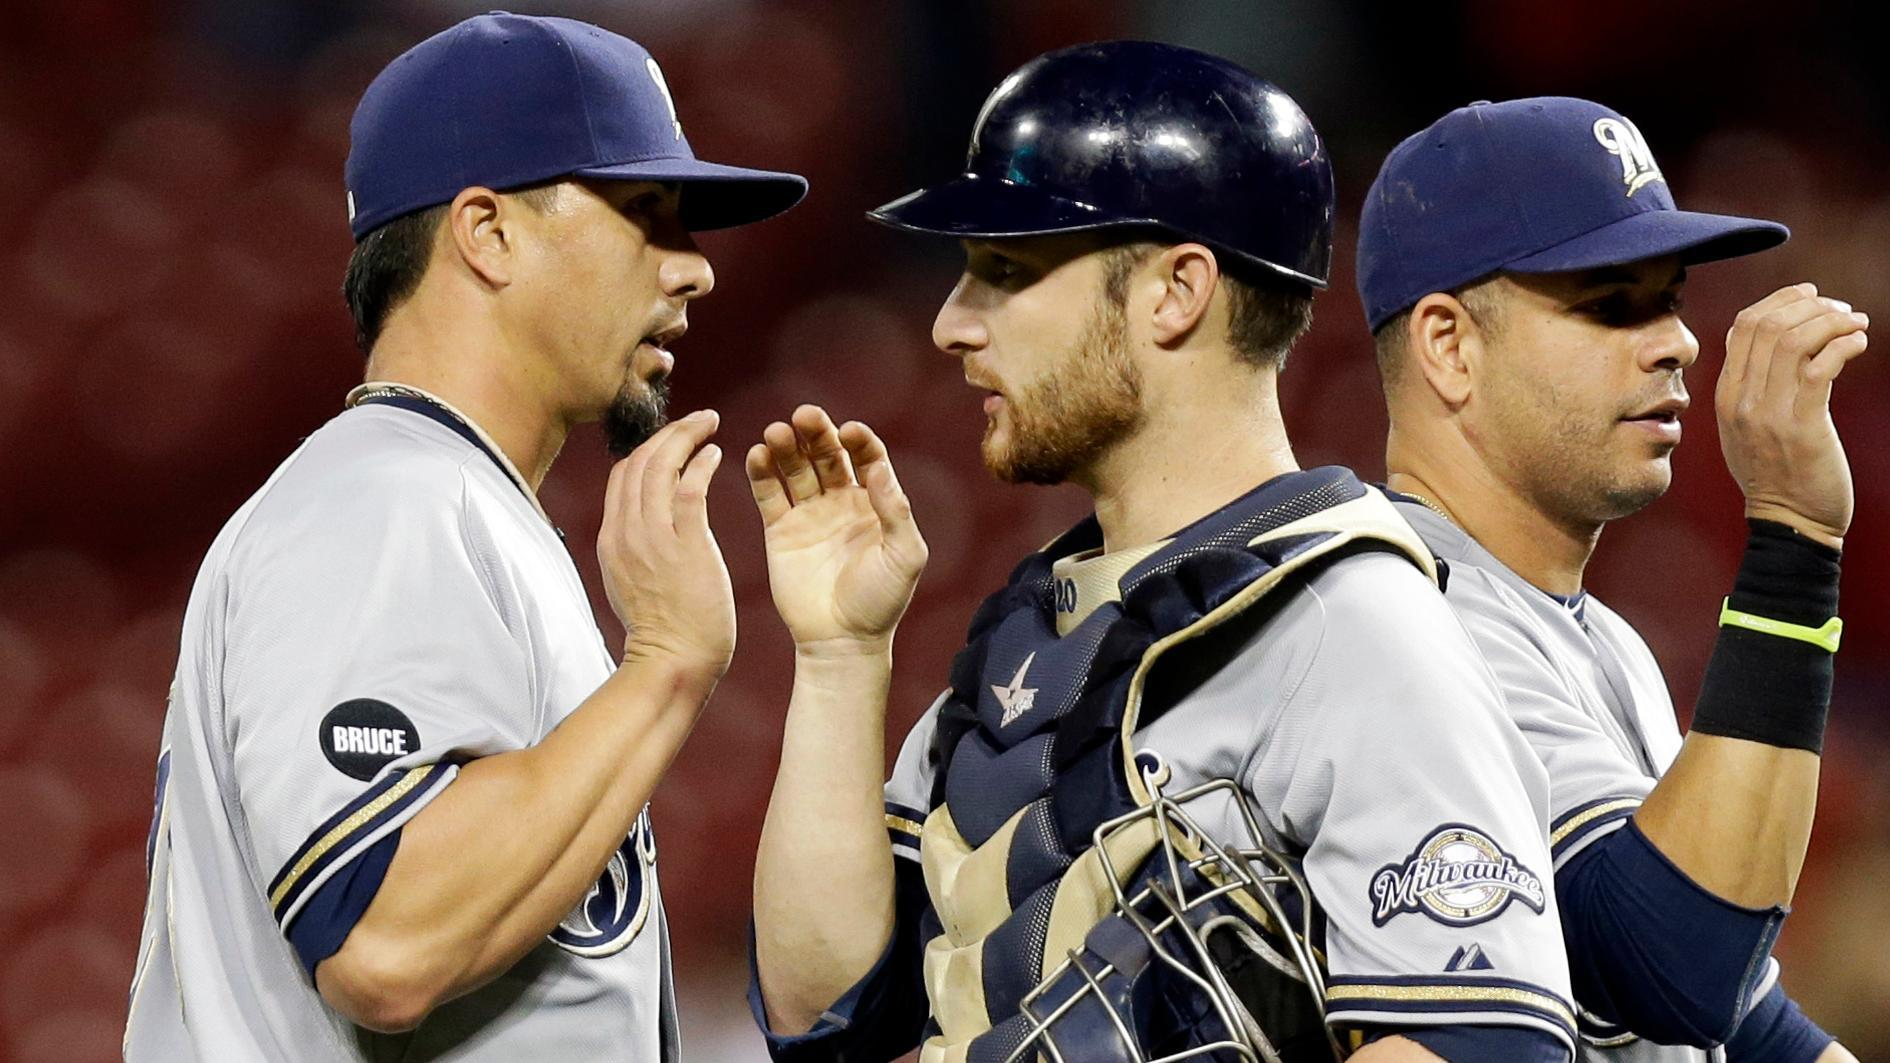 Video - Brewers Shut Out Reds